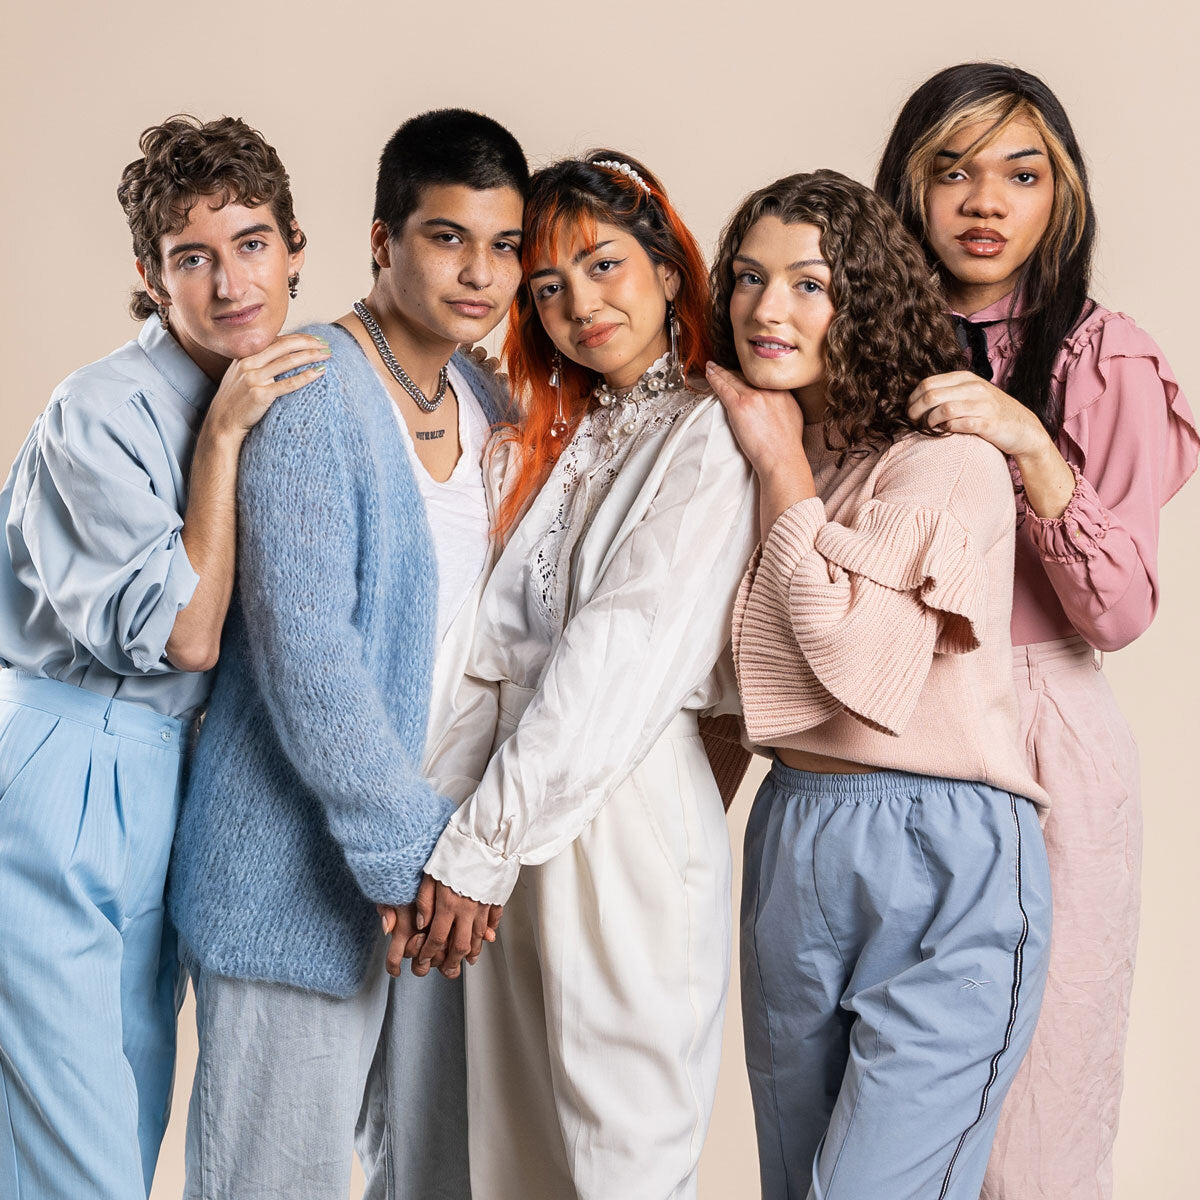 group of lgbt people leaning on eachother in pastel colors